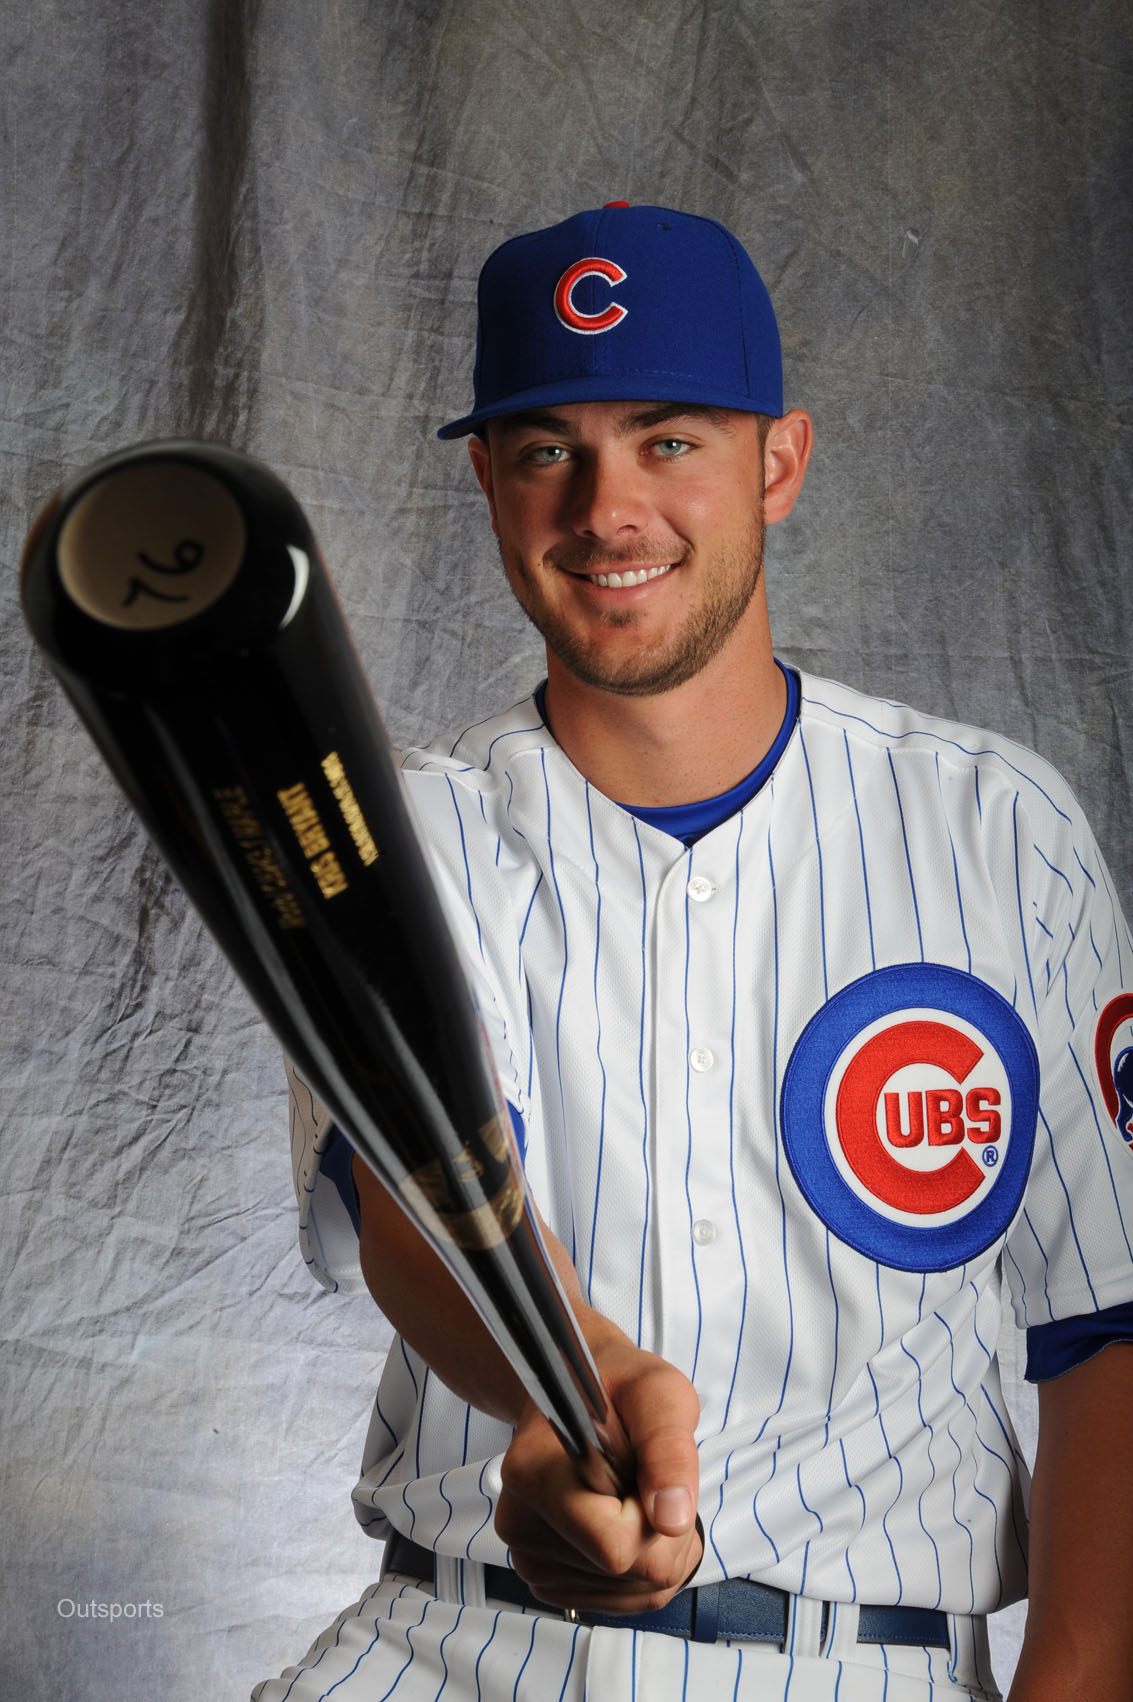 Kris_Bryant0005.0 cubs call up kris bryant, hottest new guy in baseball outsports